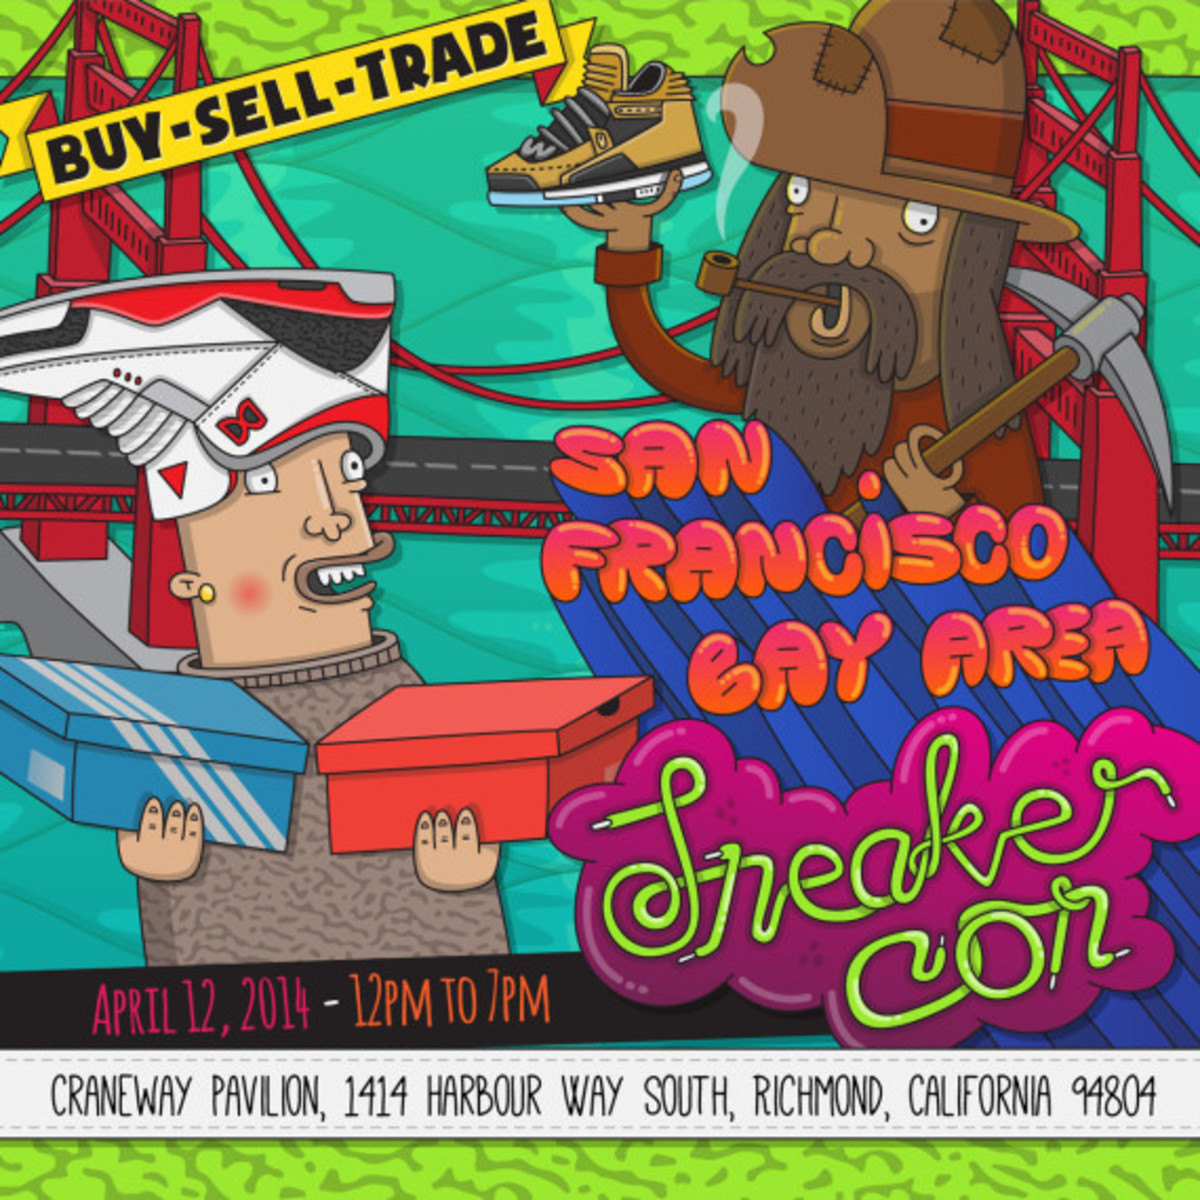 sneaker-con-san-francisco-bay-area-april-2014-b